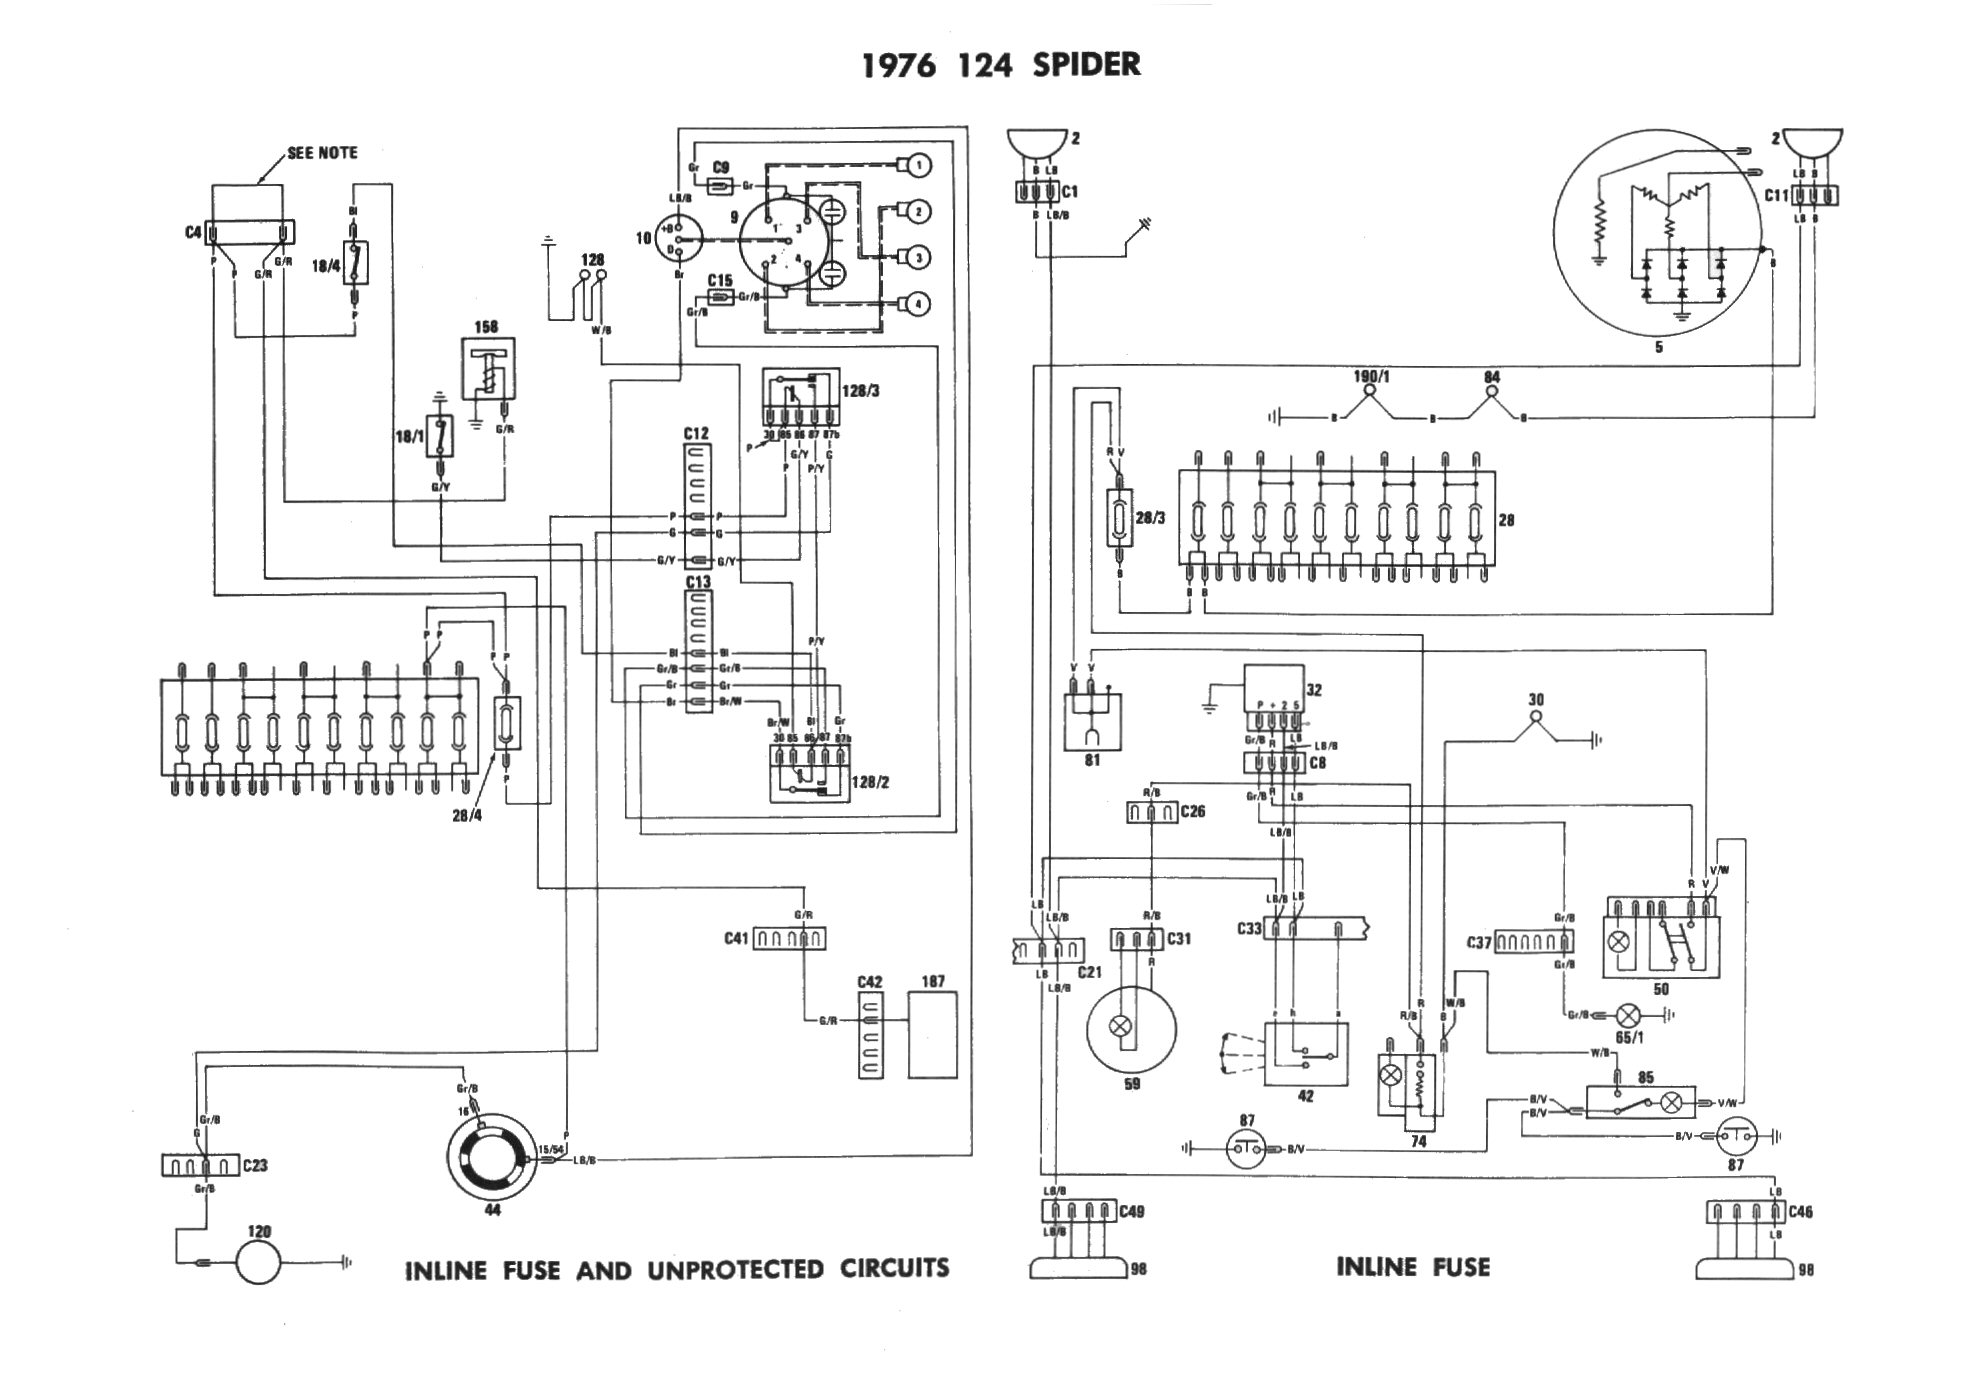 alfa romeo wiring diagram human immune system fiat spider fuse box all data oreo 1980 131